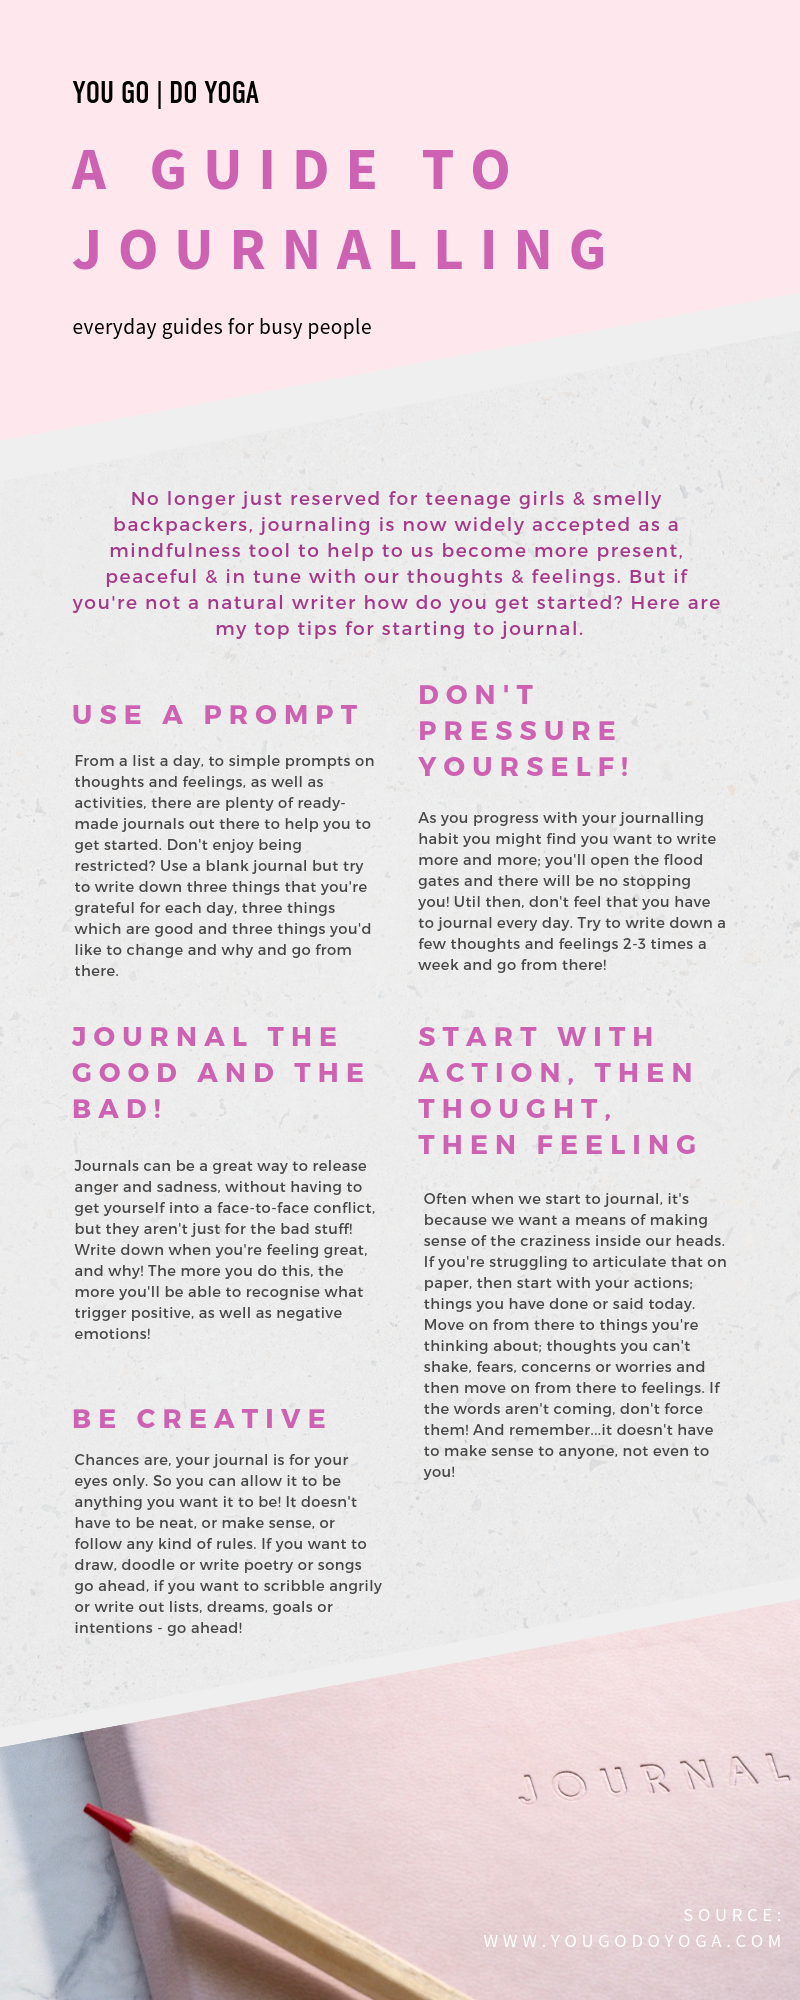 How to start a journalling practice